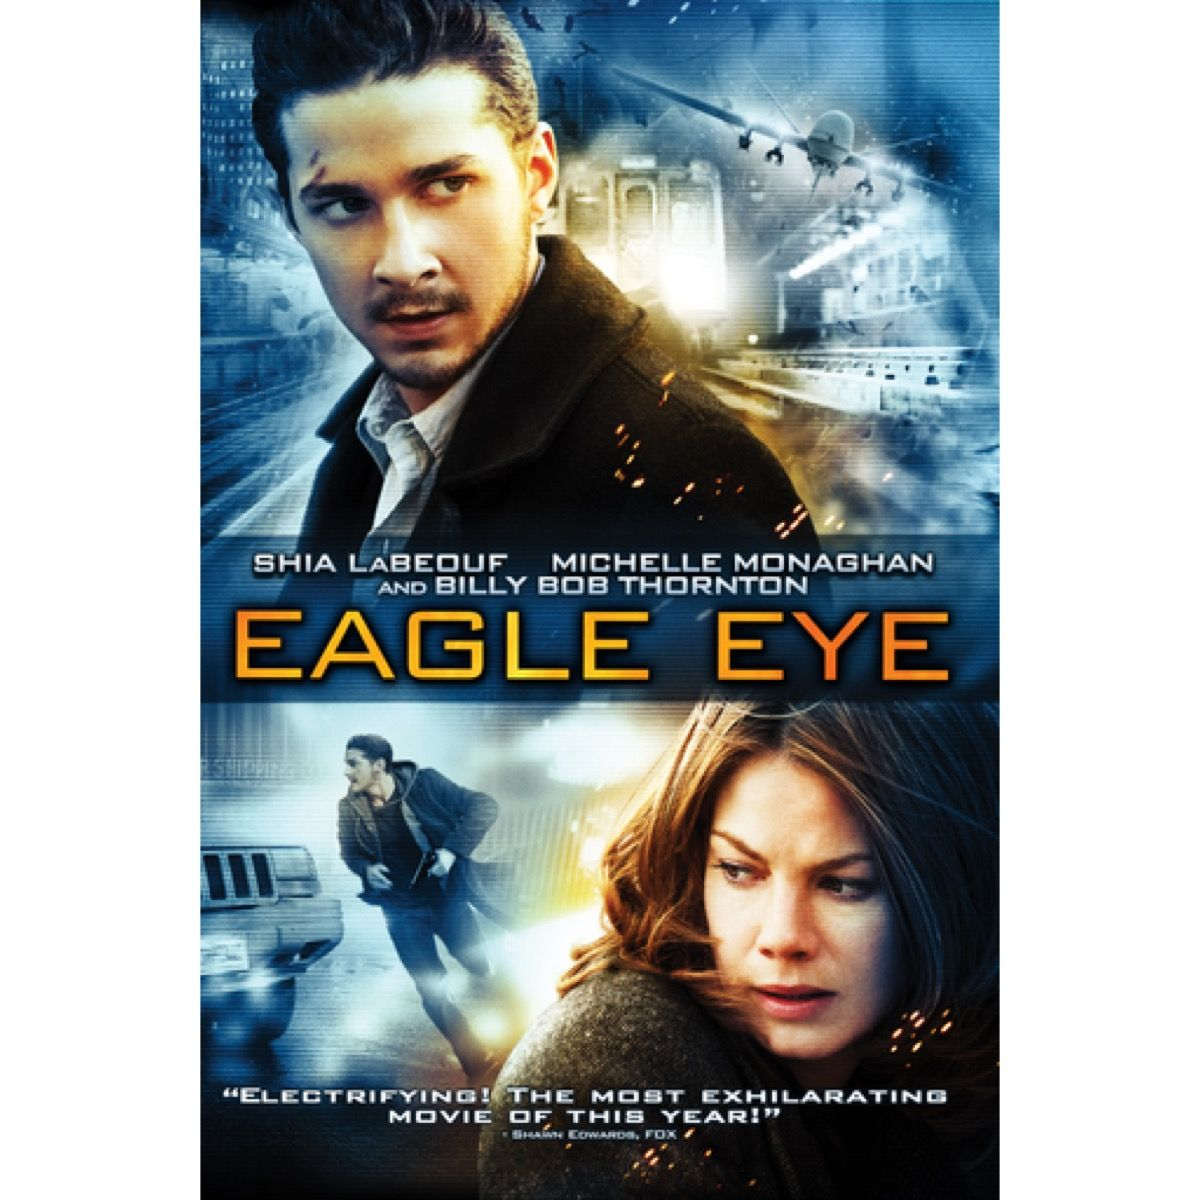 Eagle Eye, 67 off, ↘️ 4.99! Discover great deals on